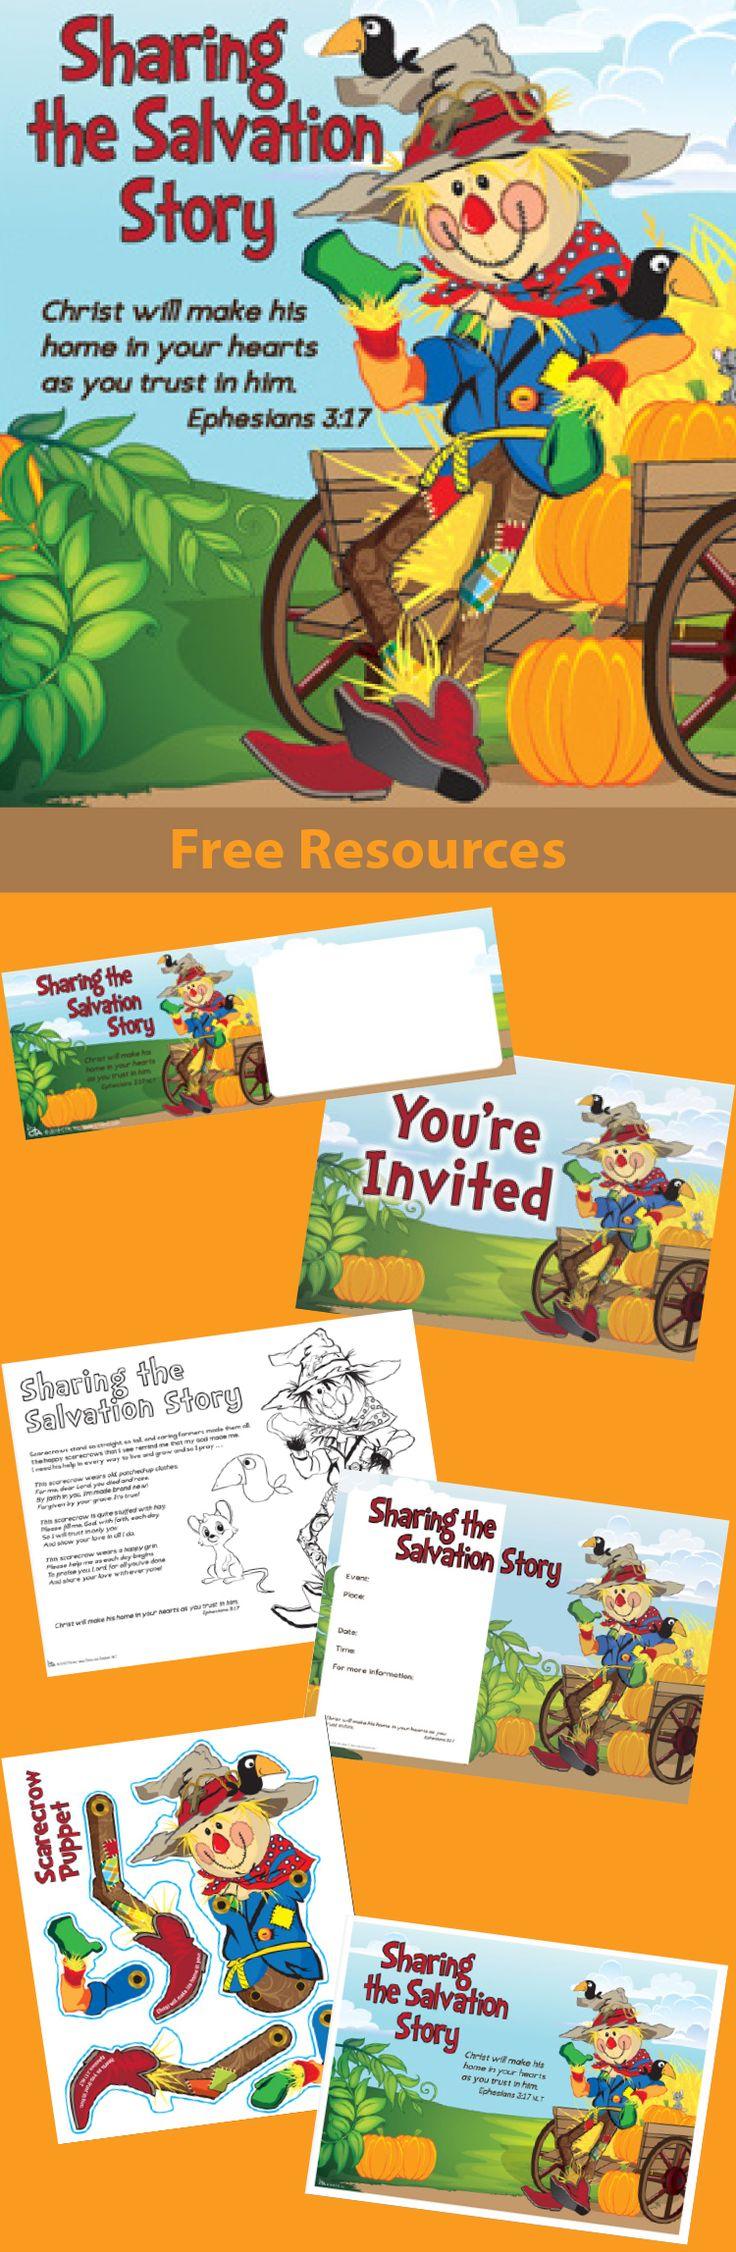 best images about fall festival and thanksgiving invitations flyers puppet patterns more from cta use at christian childrens ministry events fall festivals trunk or treats